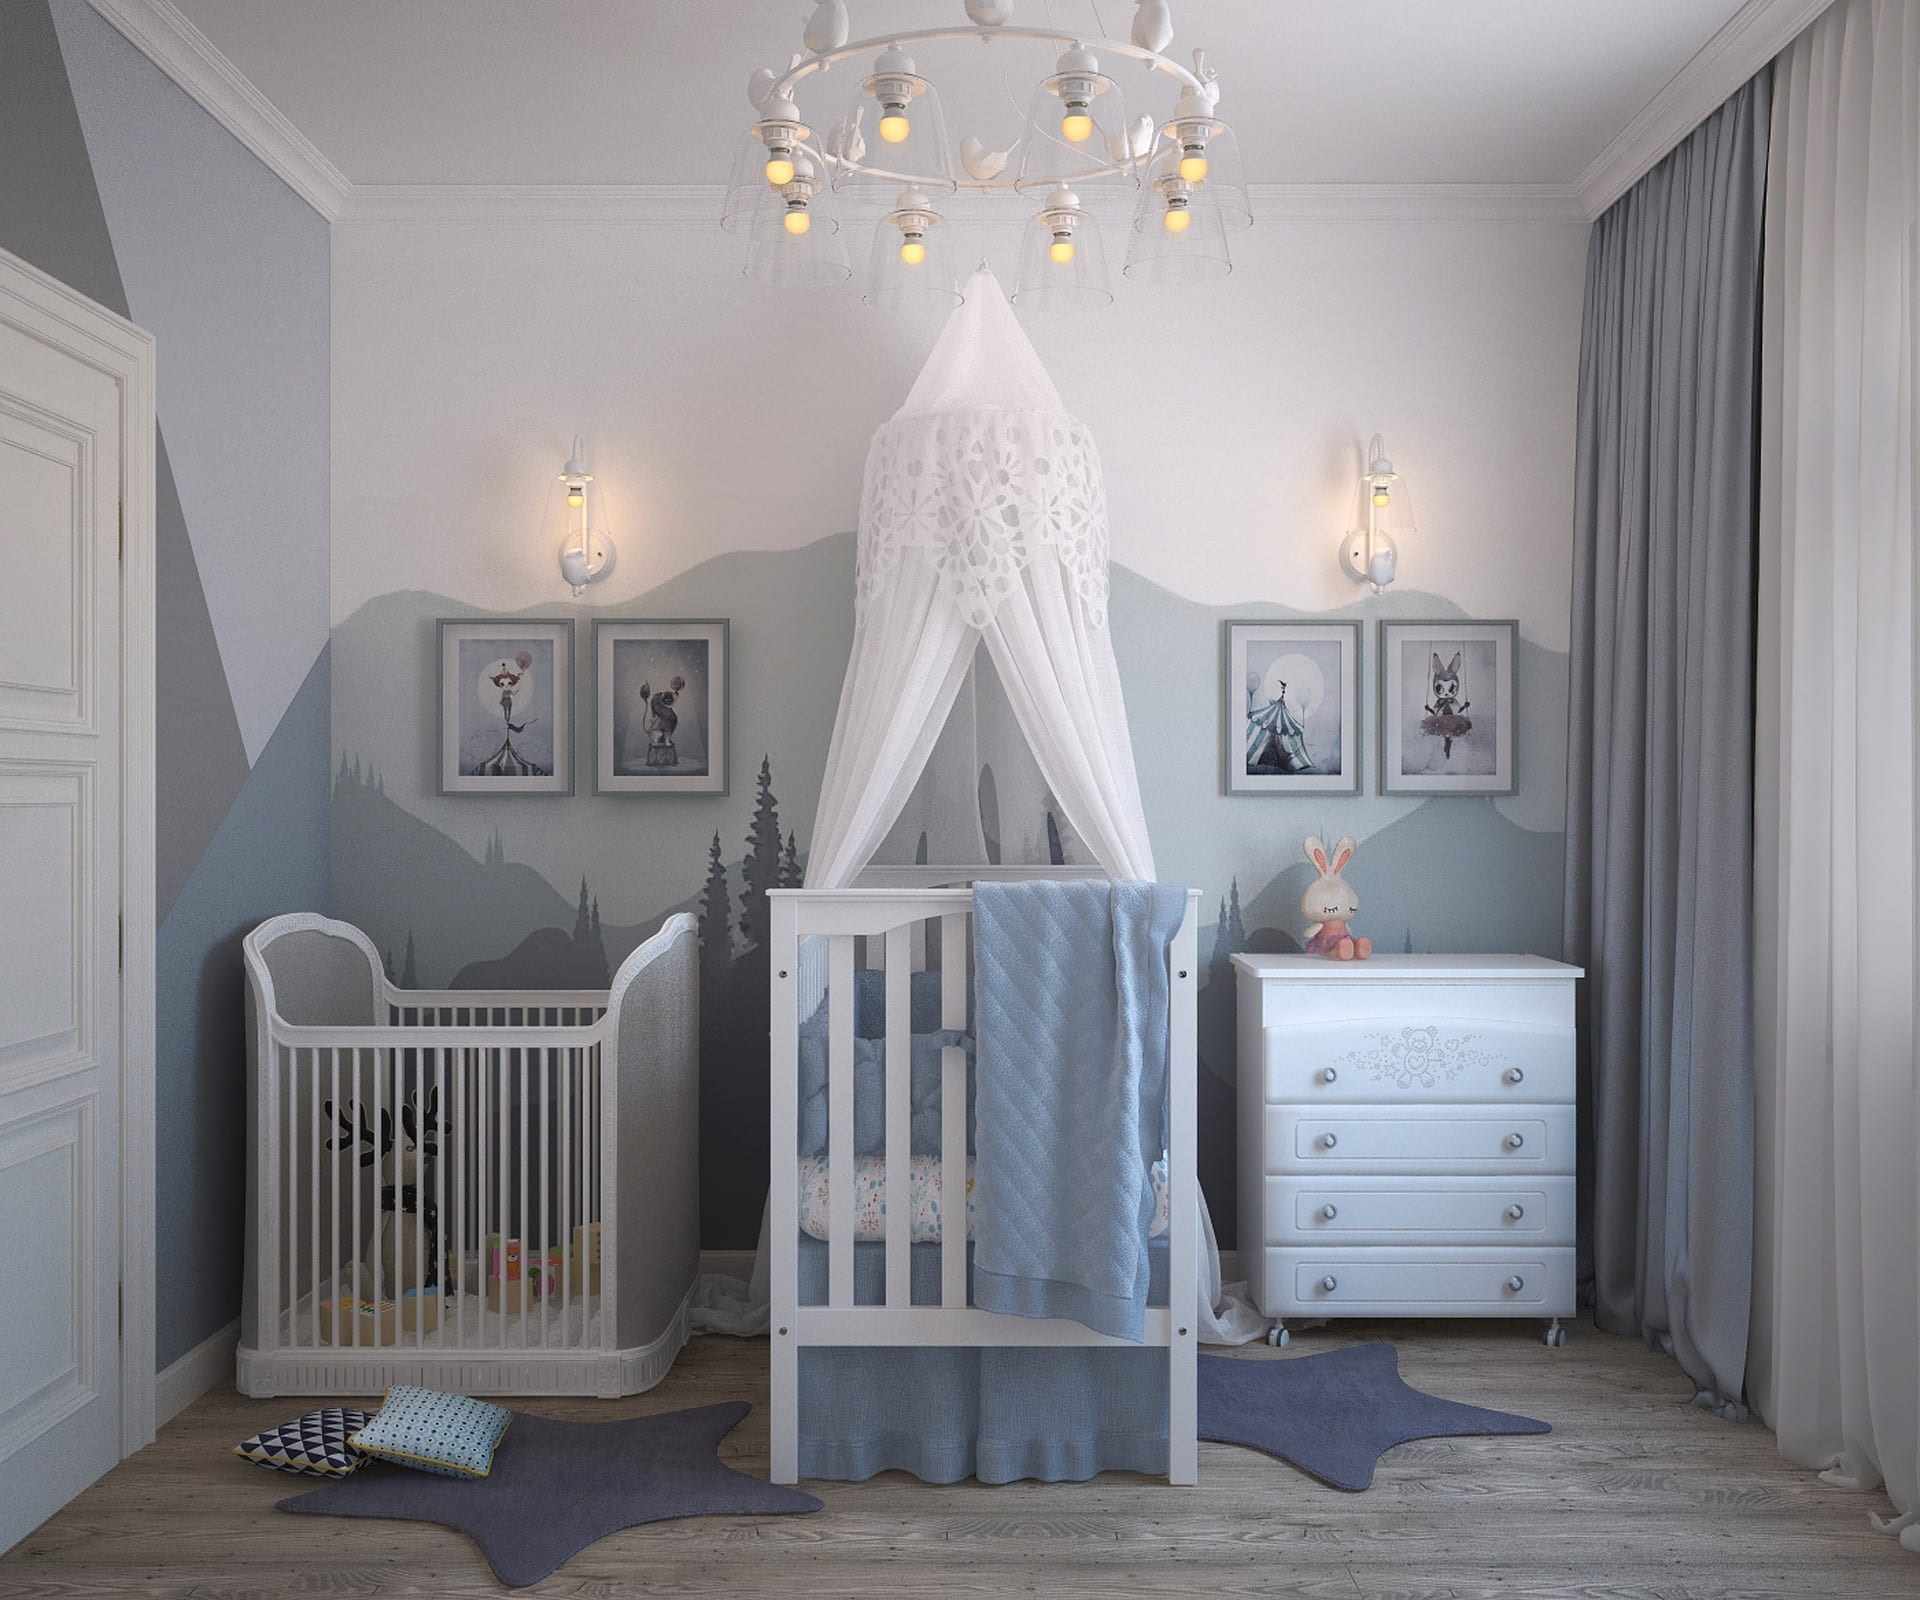 childproof-features-for-your-home-image